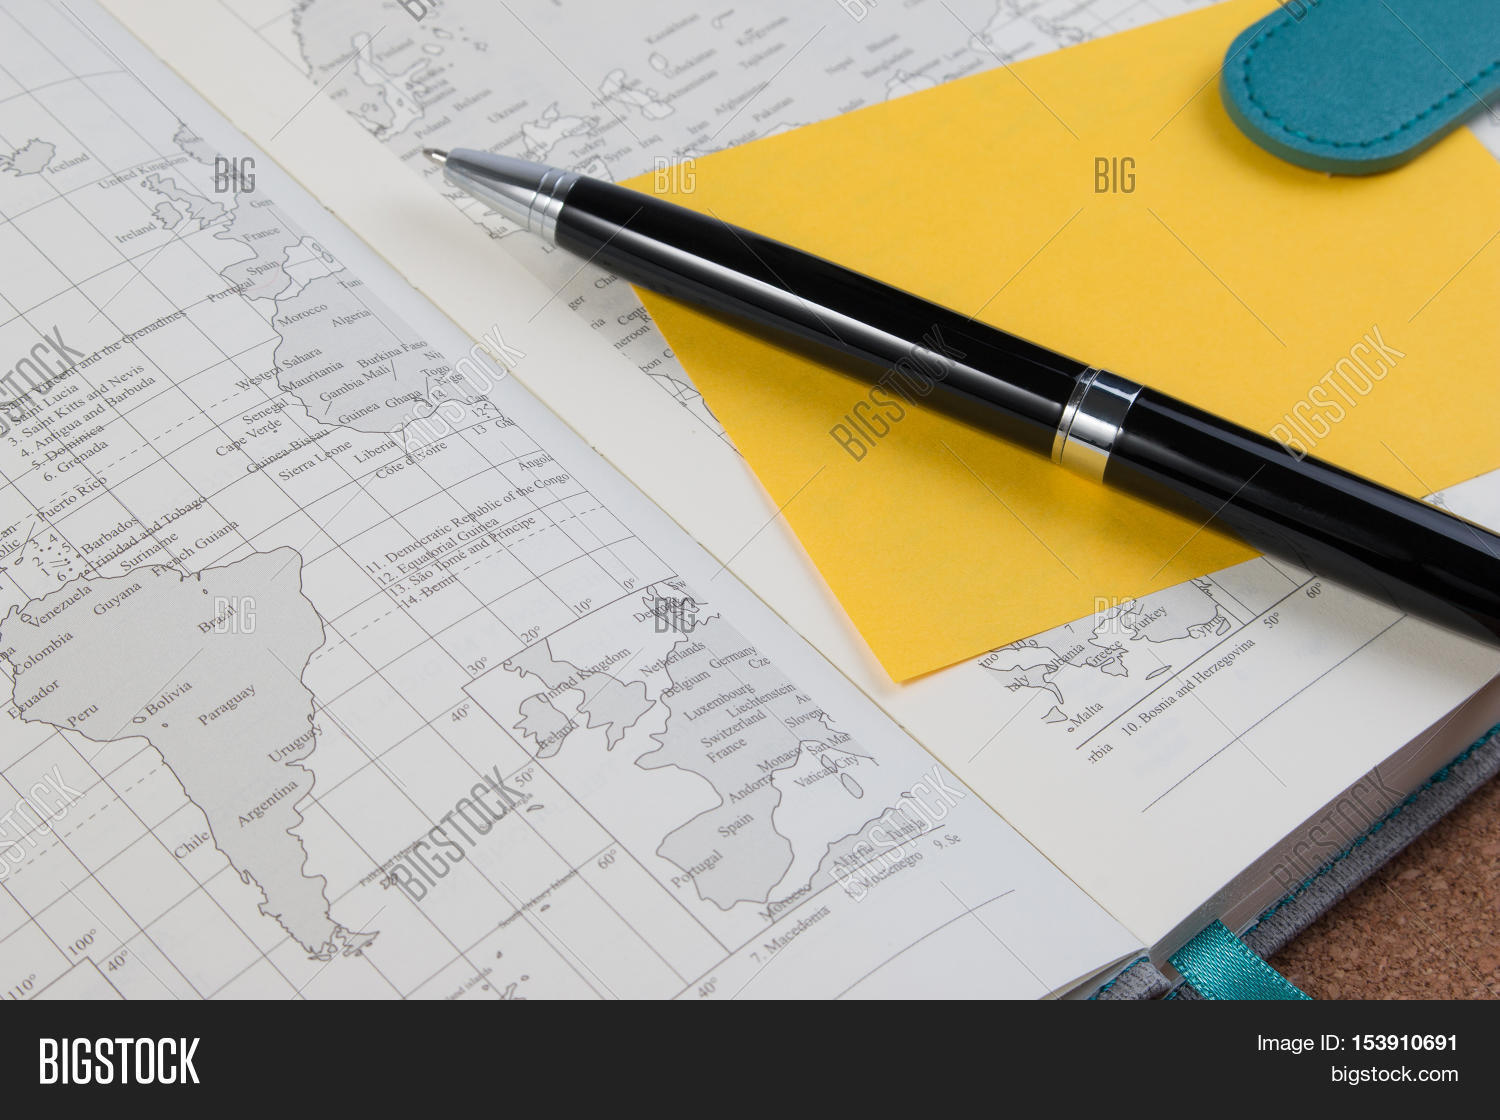 Imagen y foto world atlas business diary book bigstock world atlas business diary book with yellow paper note open business diary map book with gumiabroncs Image collections